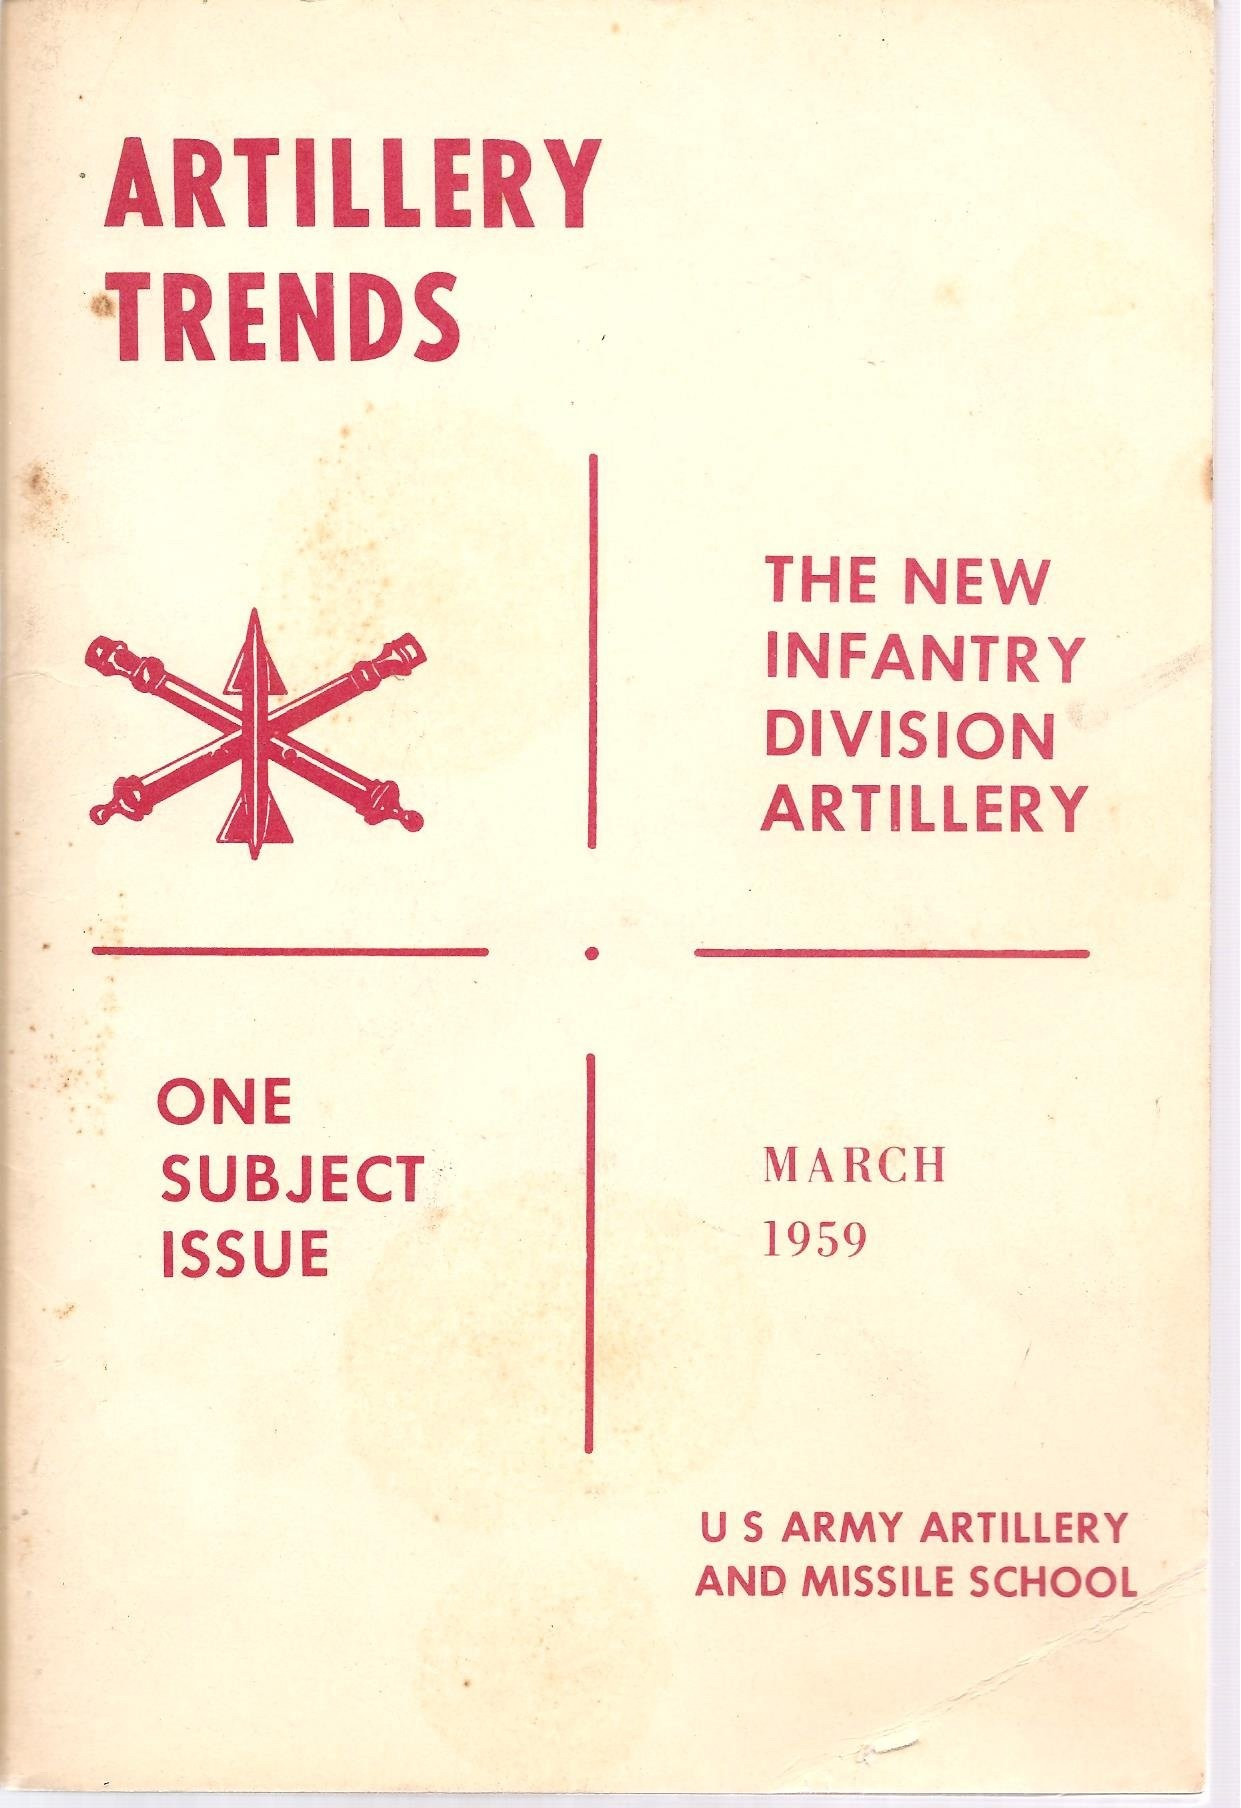 ARTILLERY TRENDS THE NEW INFANTRY DIVISION ARTILLERY ONE SUBJECT ISSUE MARCH 1959